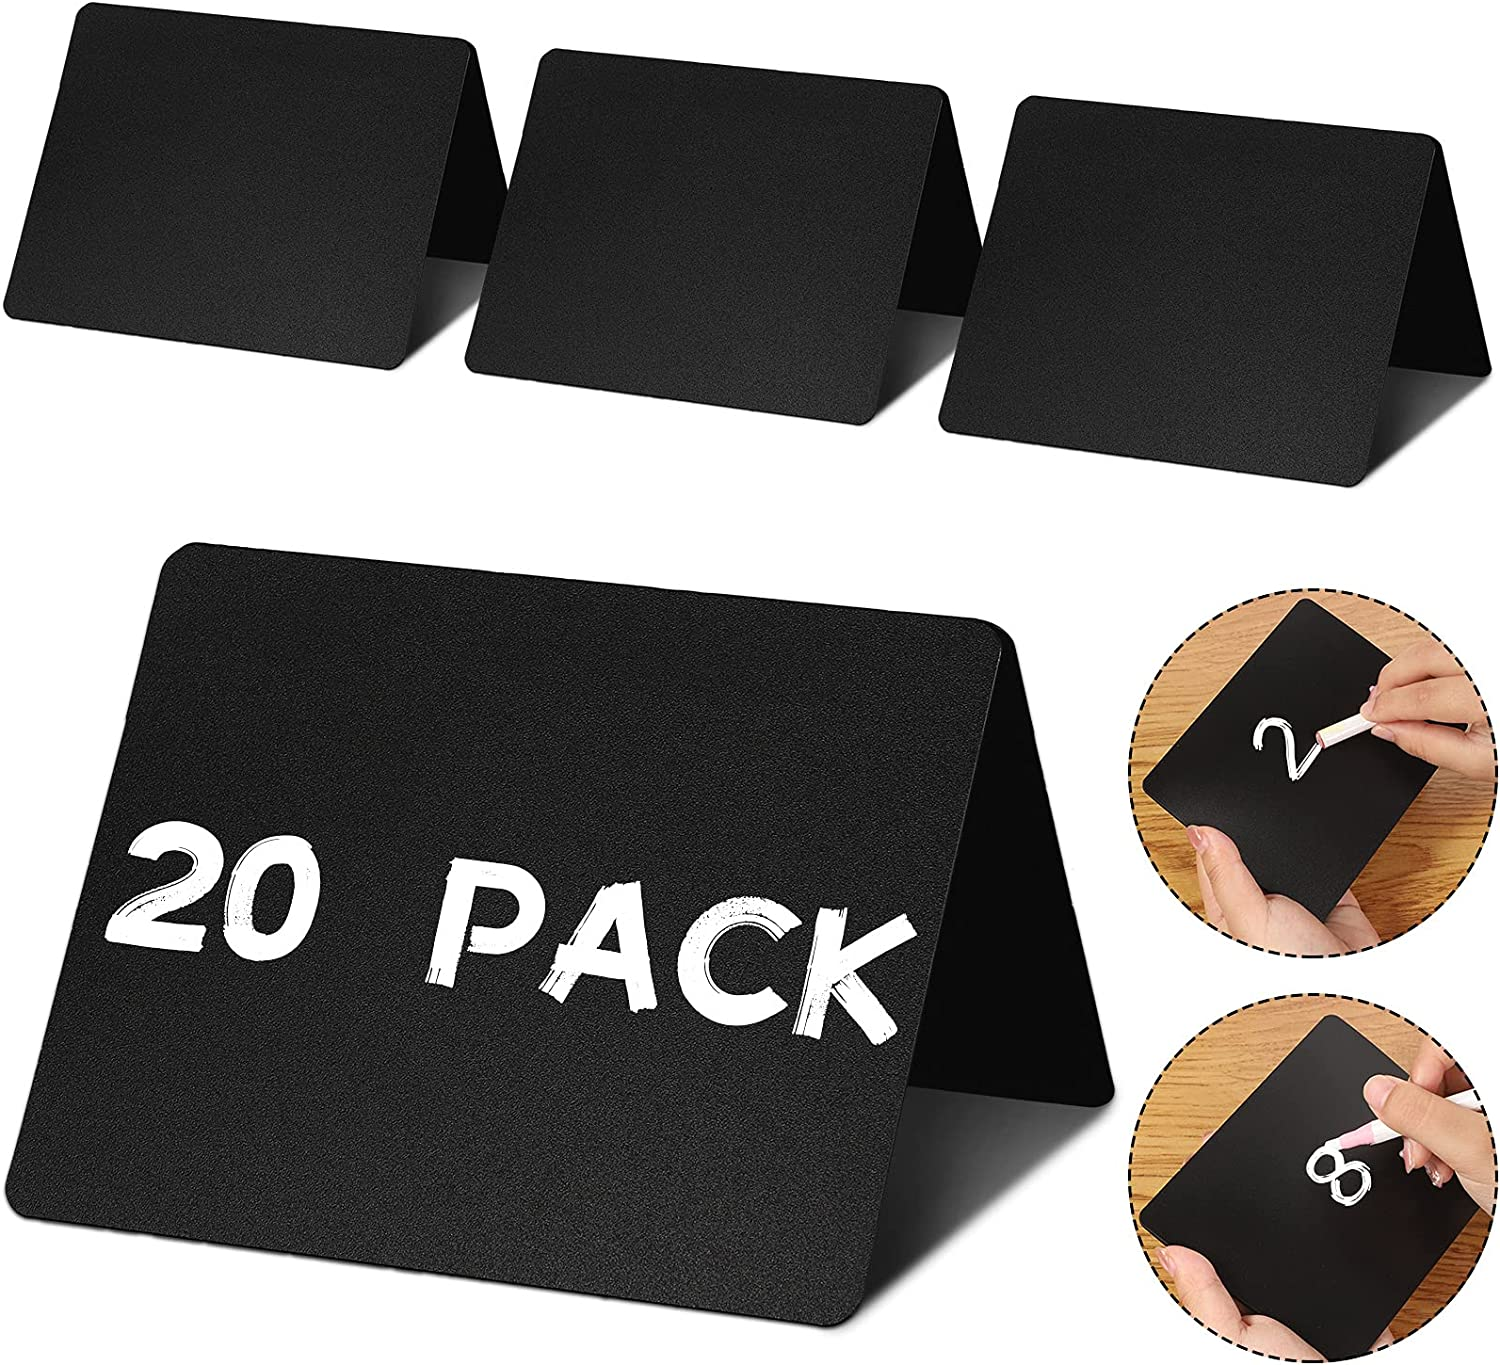 20 Pieces Mini Chalkboard Buffet Signs Chalkboard Food Signs 4 x 3 Inch Chalkboard Food Labels Chalked Name Tags Wedding Table Signs Party Buffet Tables for School Office Party Decoration